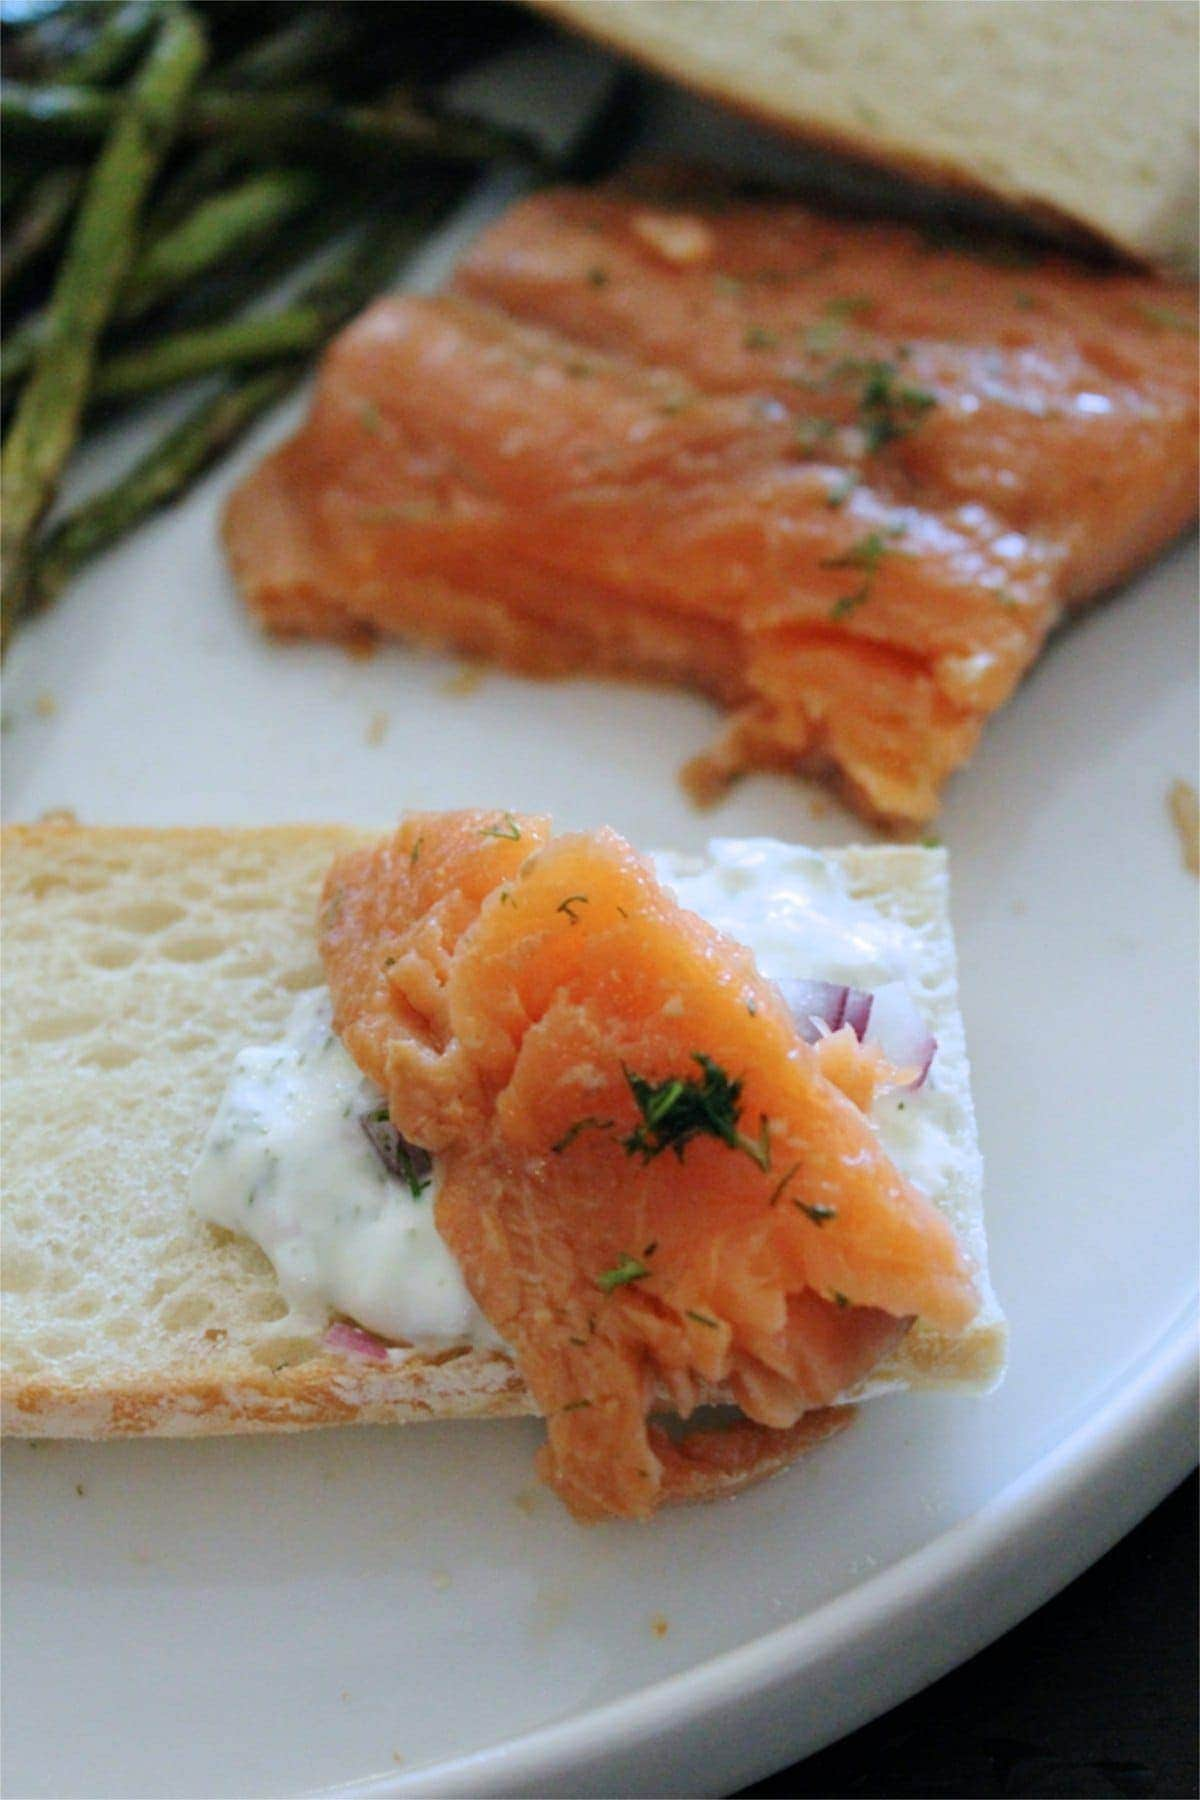 Faux Smoked Salmon Sous Vide (with Hack!): Velvetty, Rich, Perfect. The Stylist Quo: Put the Style Back into Lifestyle.